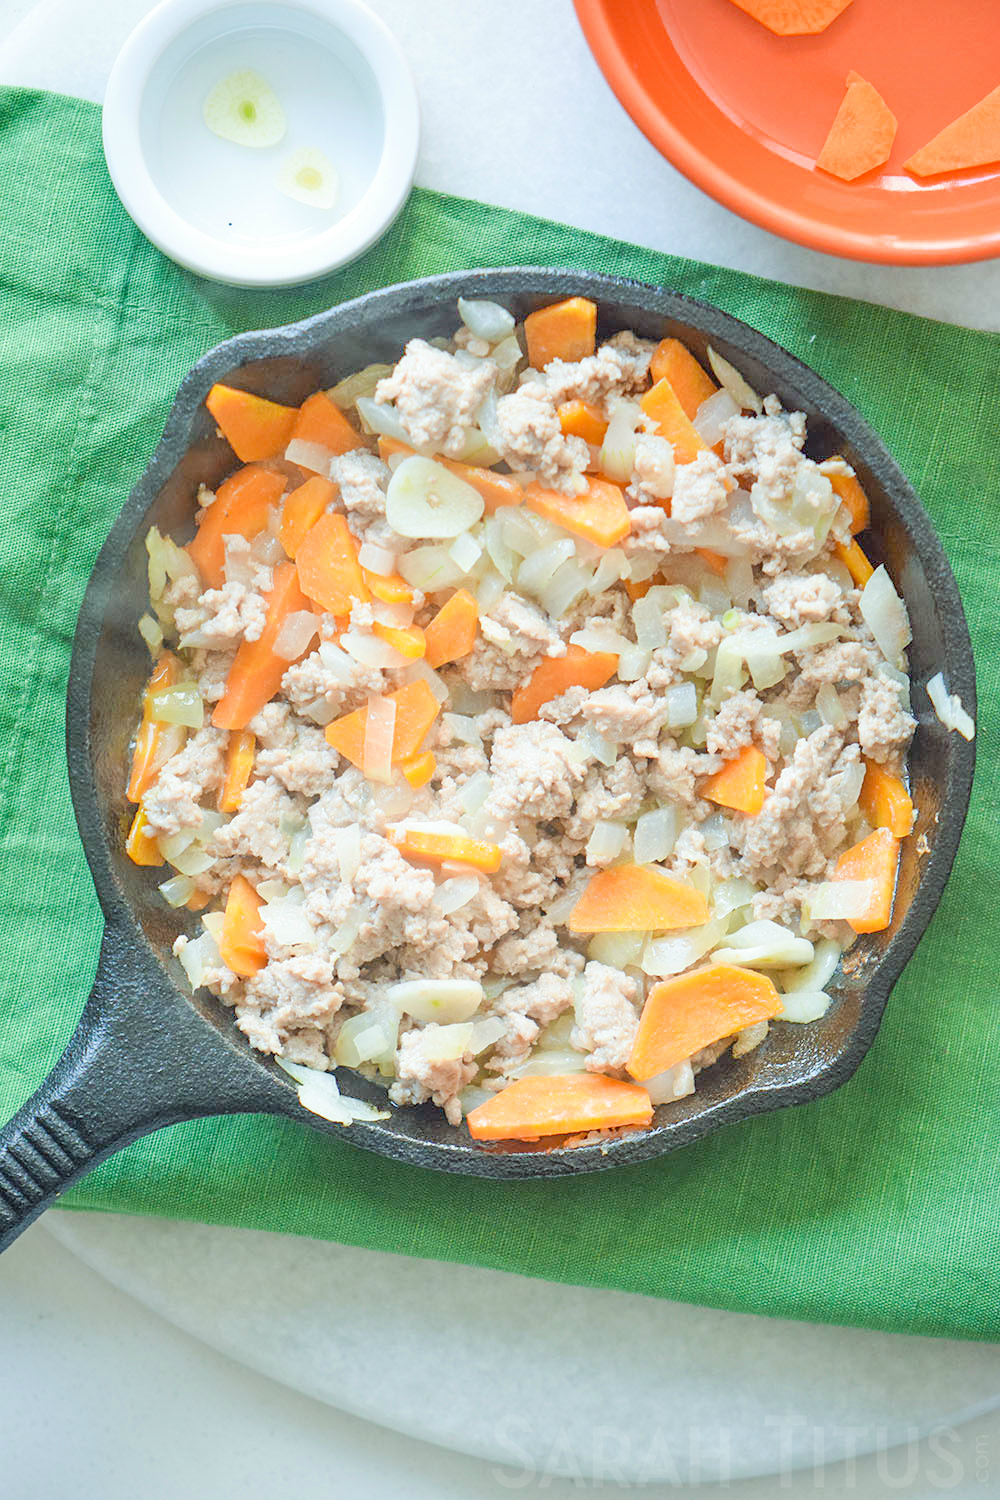 Forget Taco Tuesday! This Mexican Turkey Skillet is SO easy and delicious, it is sure to make it into your regular weeknight recipe rounds.